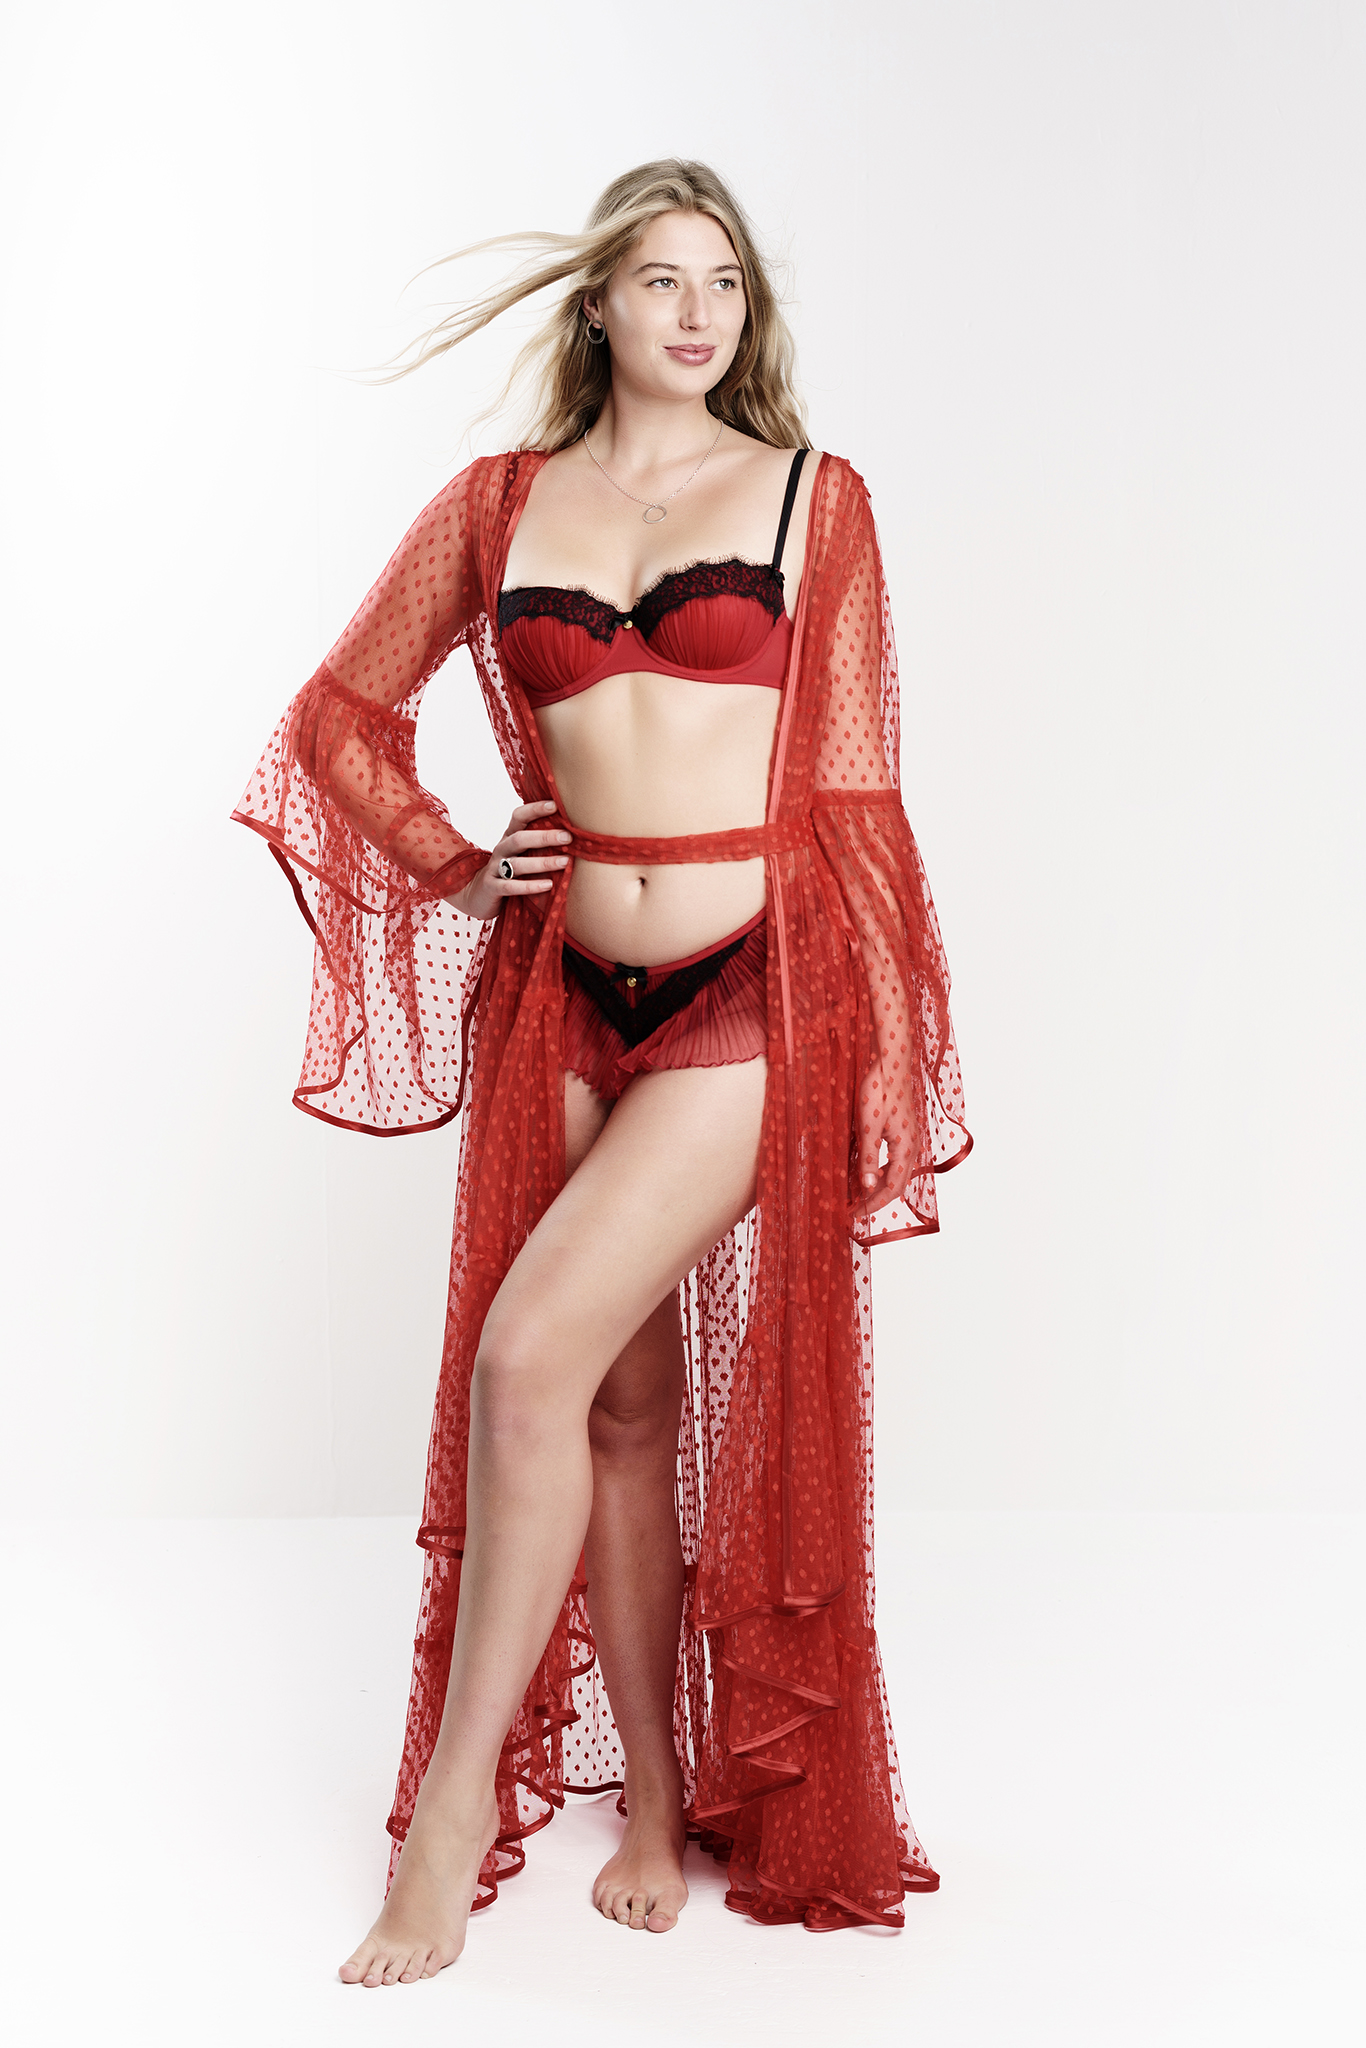 blonde model inderwear shoot in studio wearing red lace